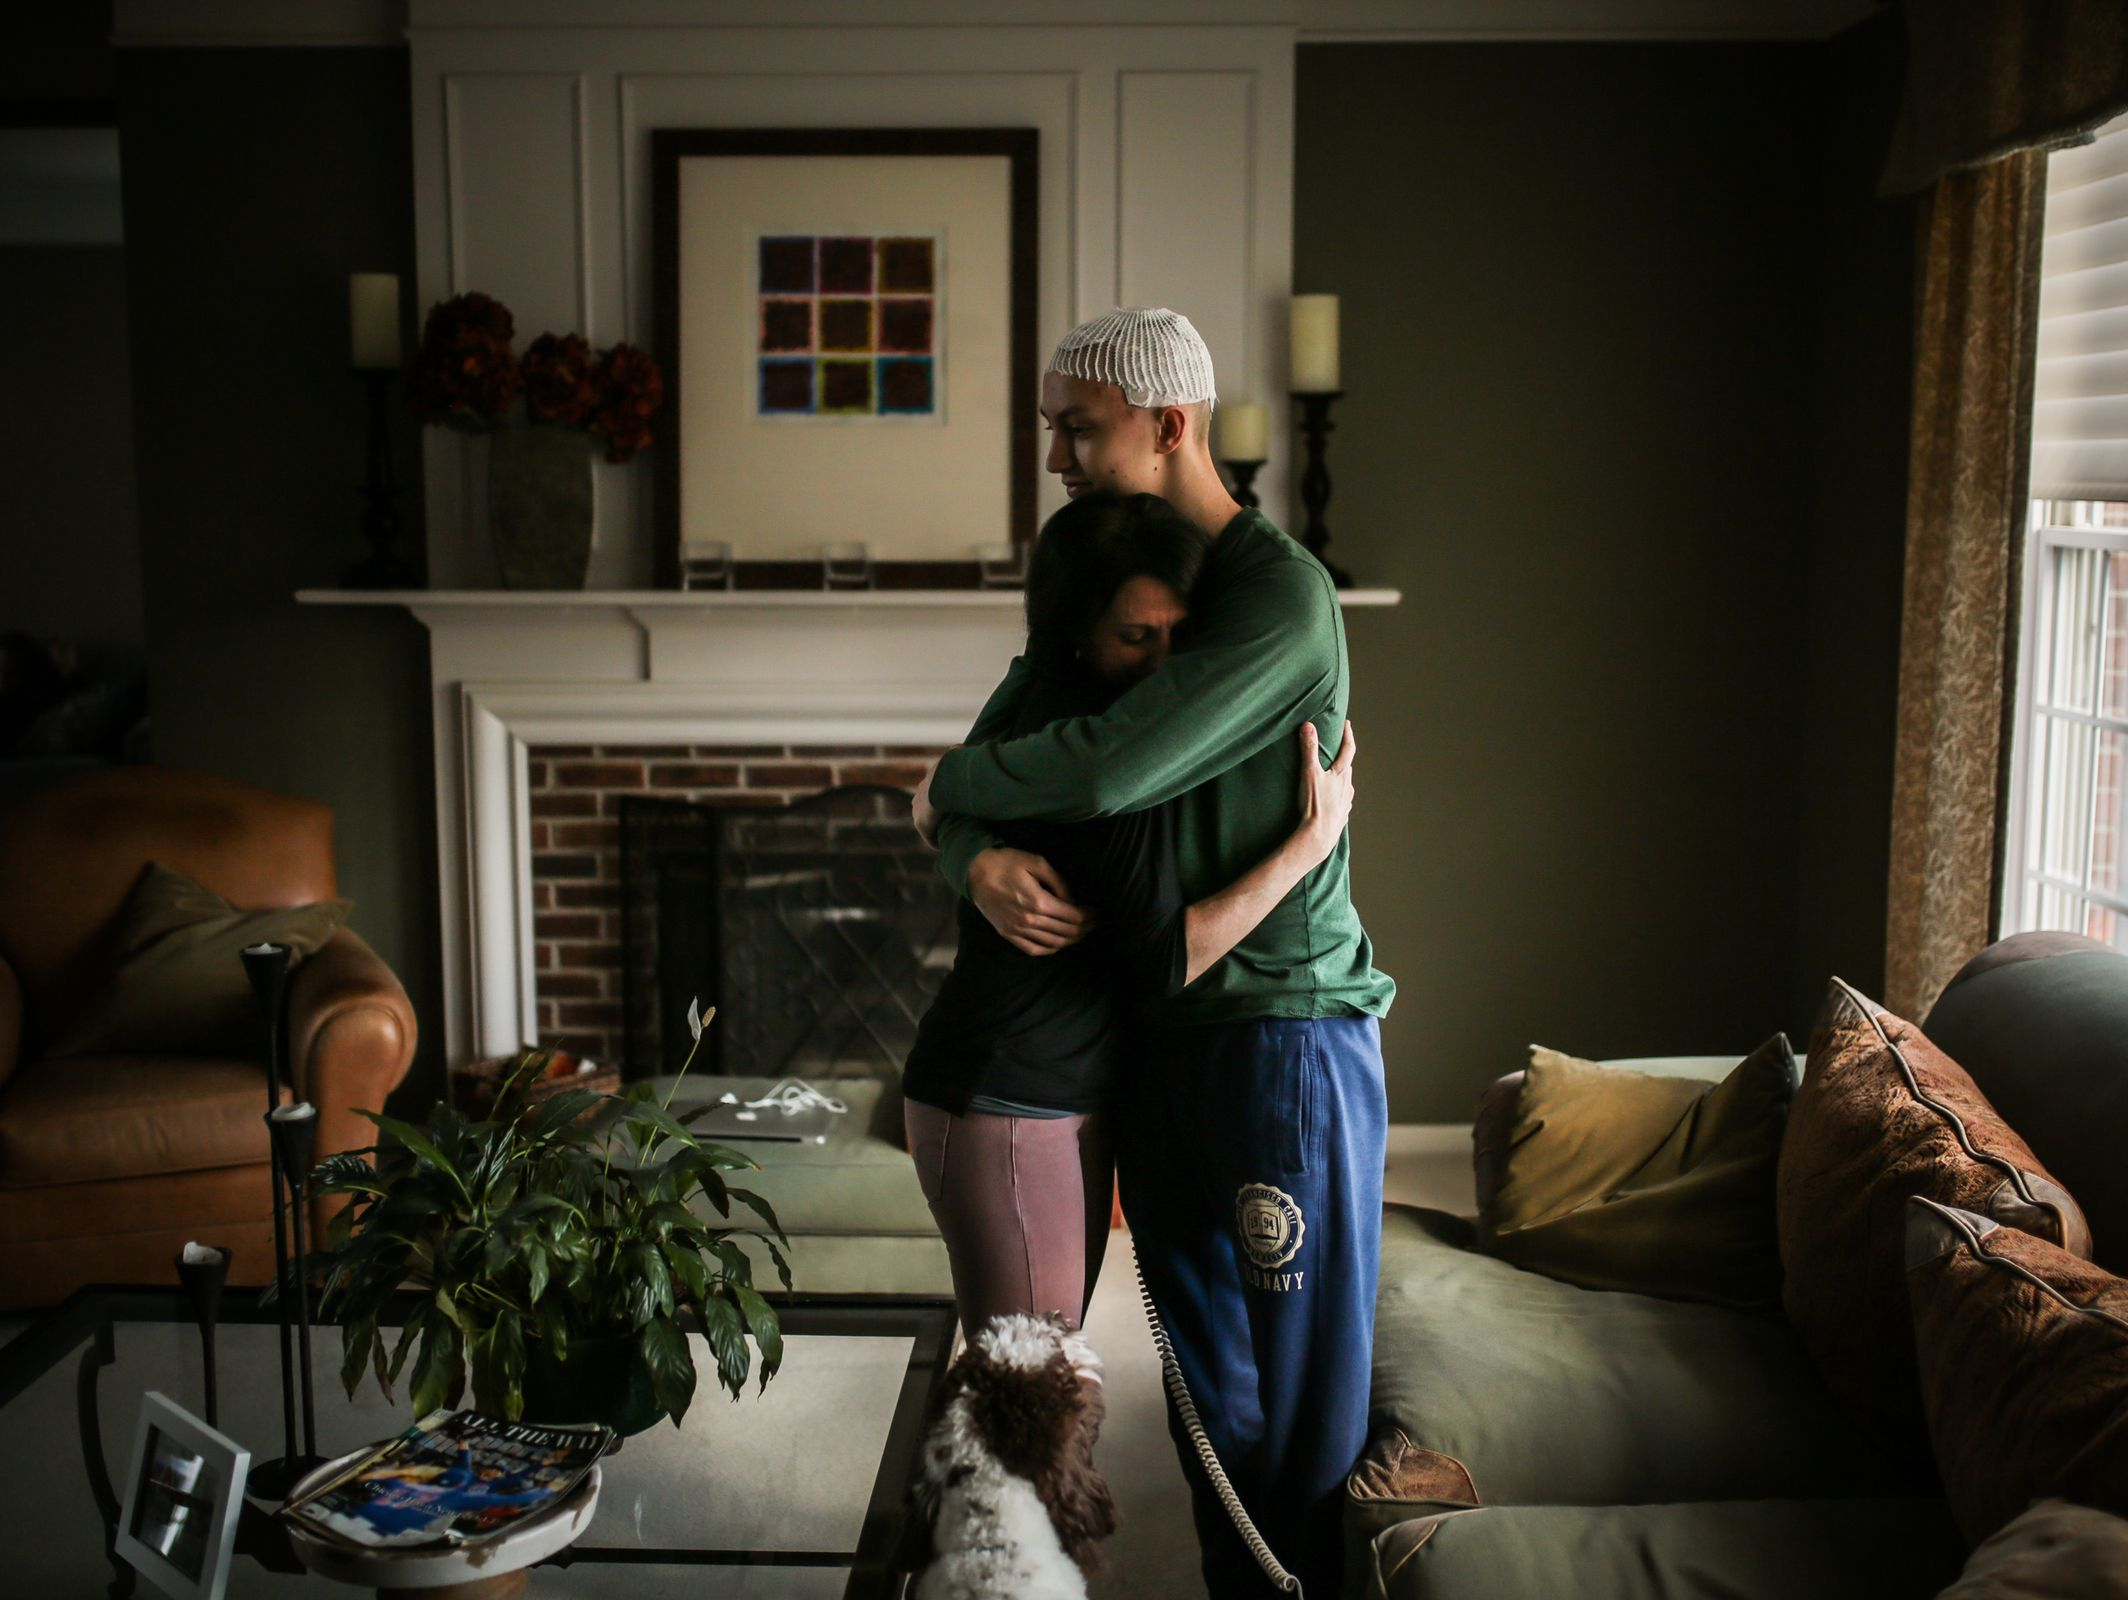 Gina Kell-Spehn, 47, of Rochester, MI, hugs her son, Sam Kell, 16, of Rochester, MI, in the living room of their home on Saturday March 11, 2017 in Rochester, MI. Kell is sophomore at Rochester Stoney Creek High School and is battling a form of brain cancer.